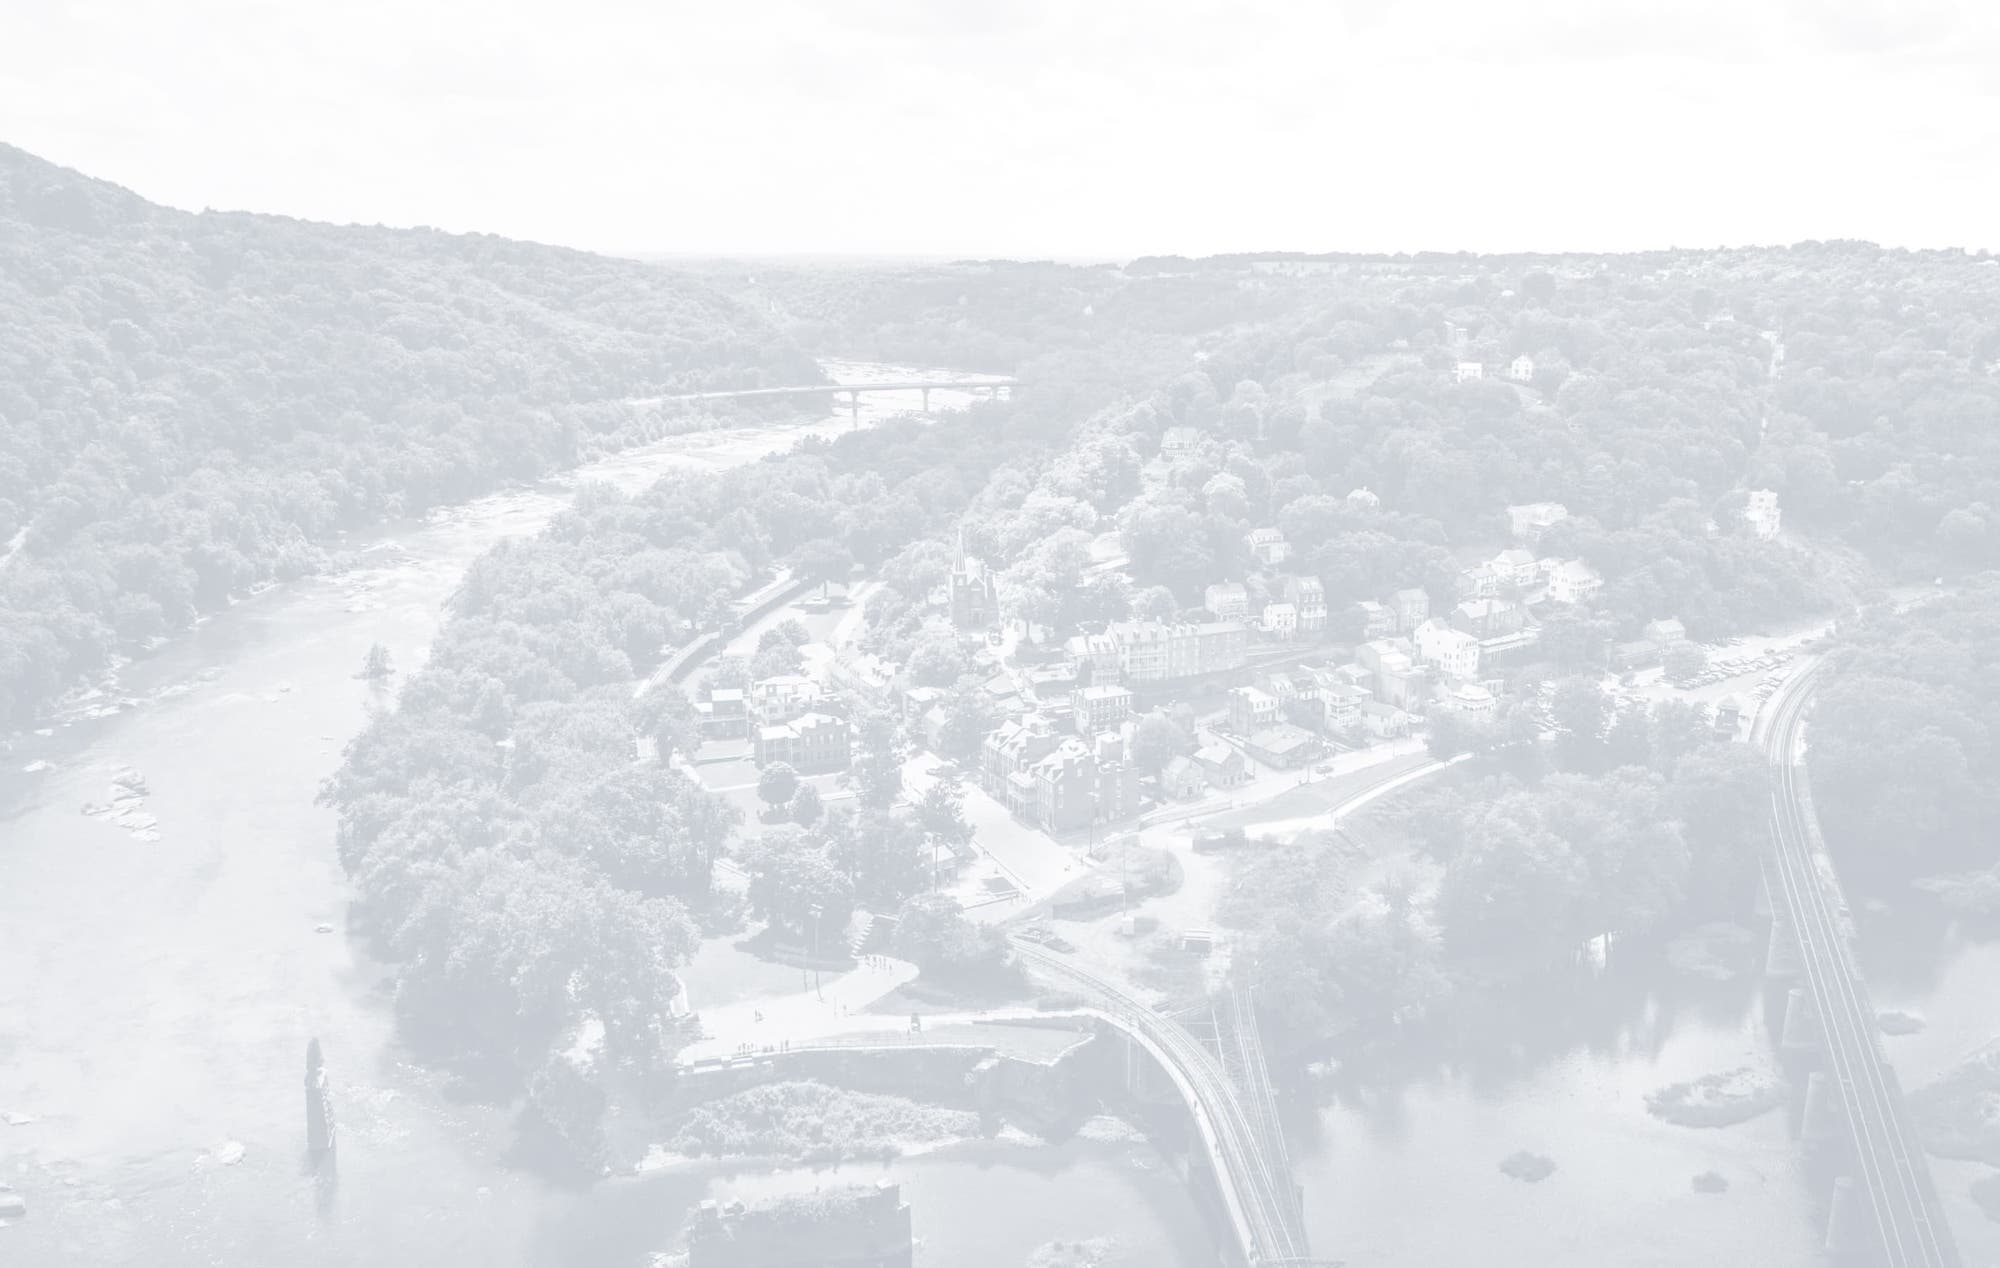 Panoramic shot of a river curving around a city's downtown area.